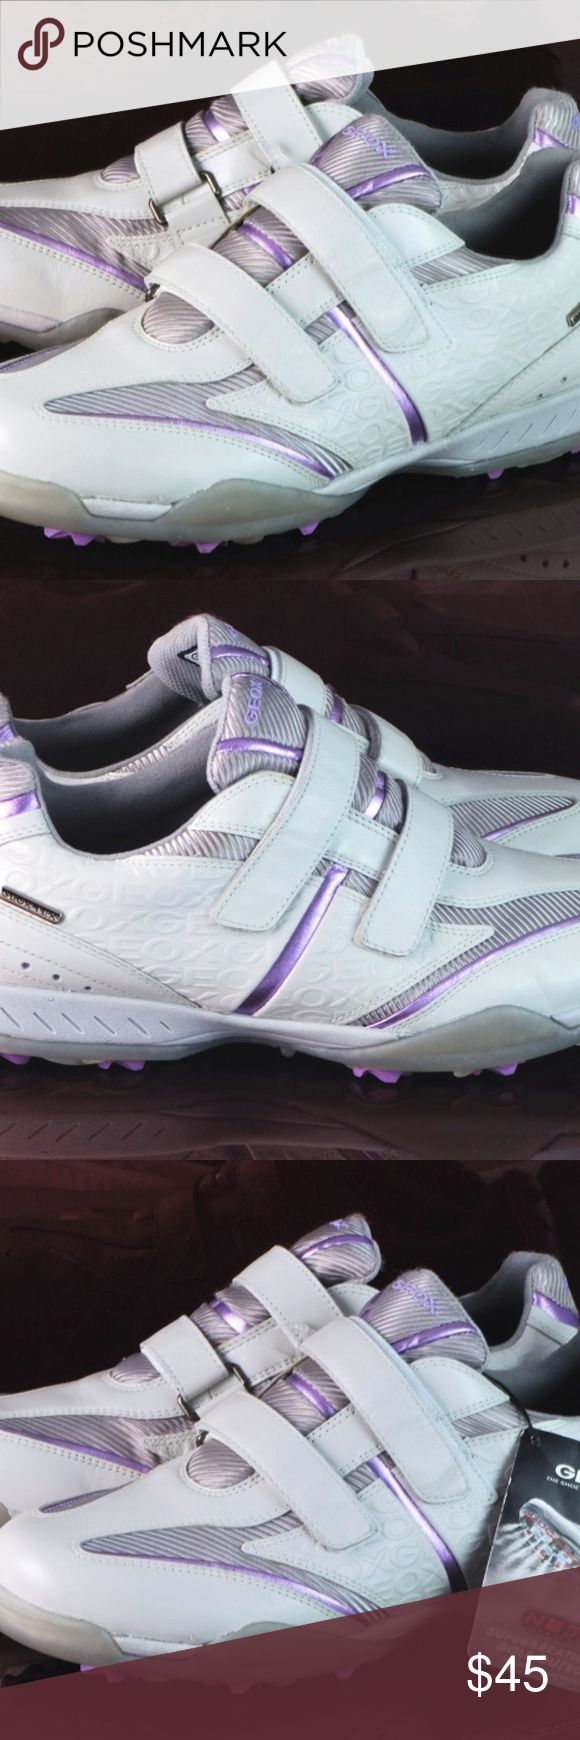 "Geox Fusion Golf Shoes White w/LiliacTrim New GEOX Fusion Breathable Golf Shoes Color: White Gray/Liliac Metallic Trims Size US 8 ( Euro 39 UK 6) New No Box ~~~~~~~~~~~~~~~~~~~~~~~~~~~~~~~~~~~~~~~~~~~~~~~~~~~~~~~~~~~~~~~~~~~~~~~~~~~~~~~~~ Sizing can be different from shoe to shoe - sole length is 11"" long +Waterproof full grain leather upper with leather overlays +GEOX Net System allows the foot to breathe over the entire surface of the sole, without allowing water penetration +Lightweight…"